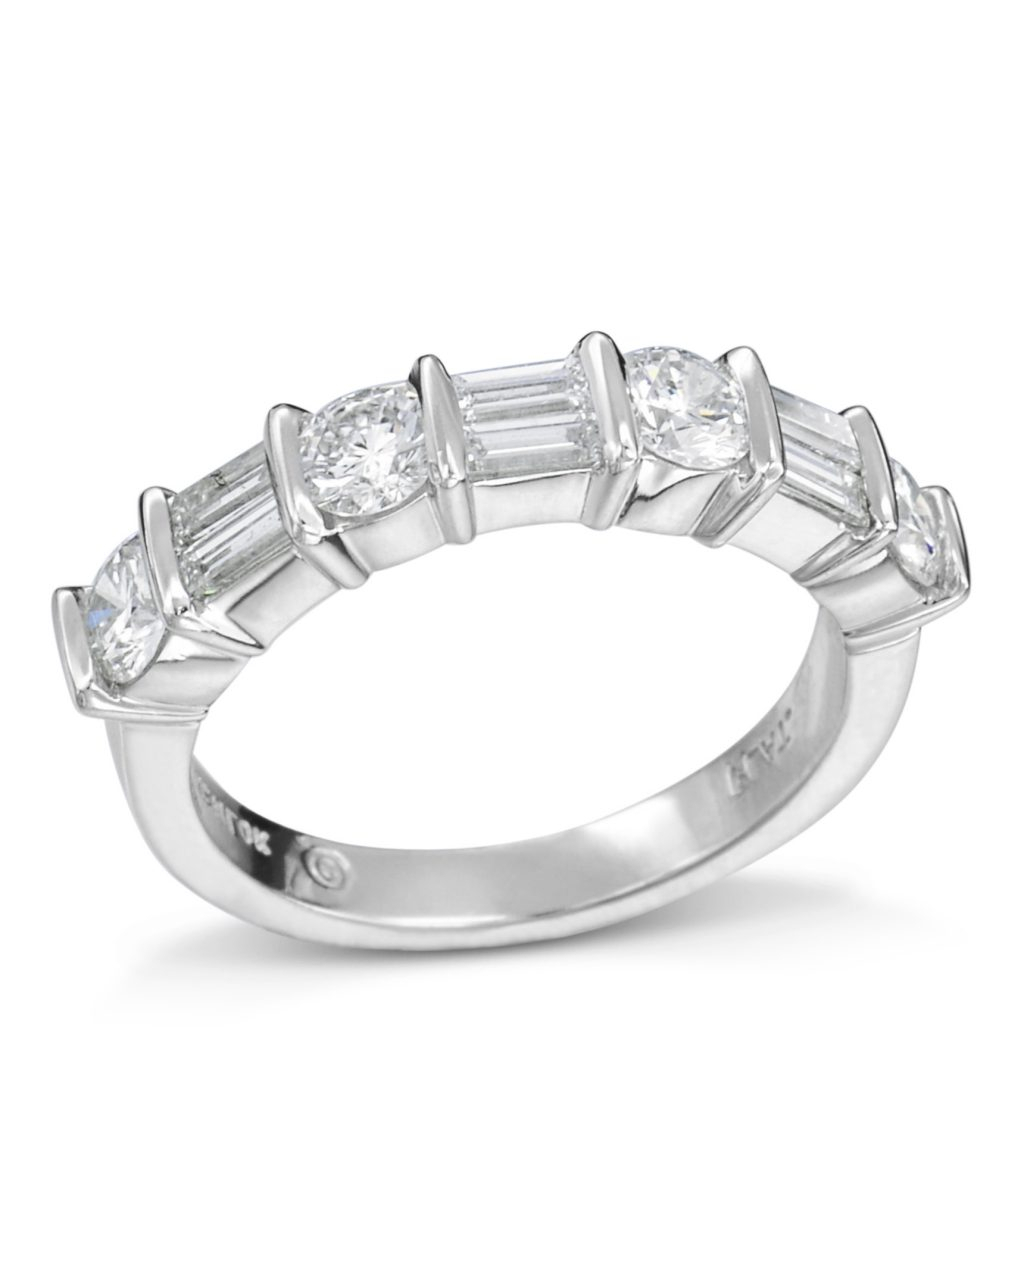 Round And Emerald Cut Diamond Band – Turgeon Raine Pertaining To Newest Bar Set Round Brilliant And Emerald Cut Diamond Wedding Bands (View 19 of 25)